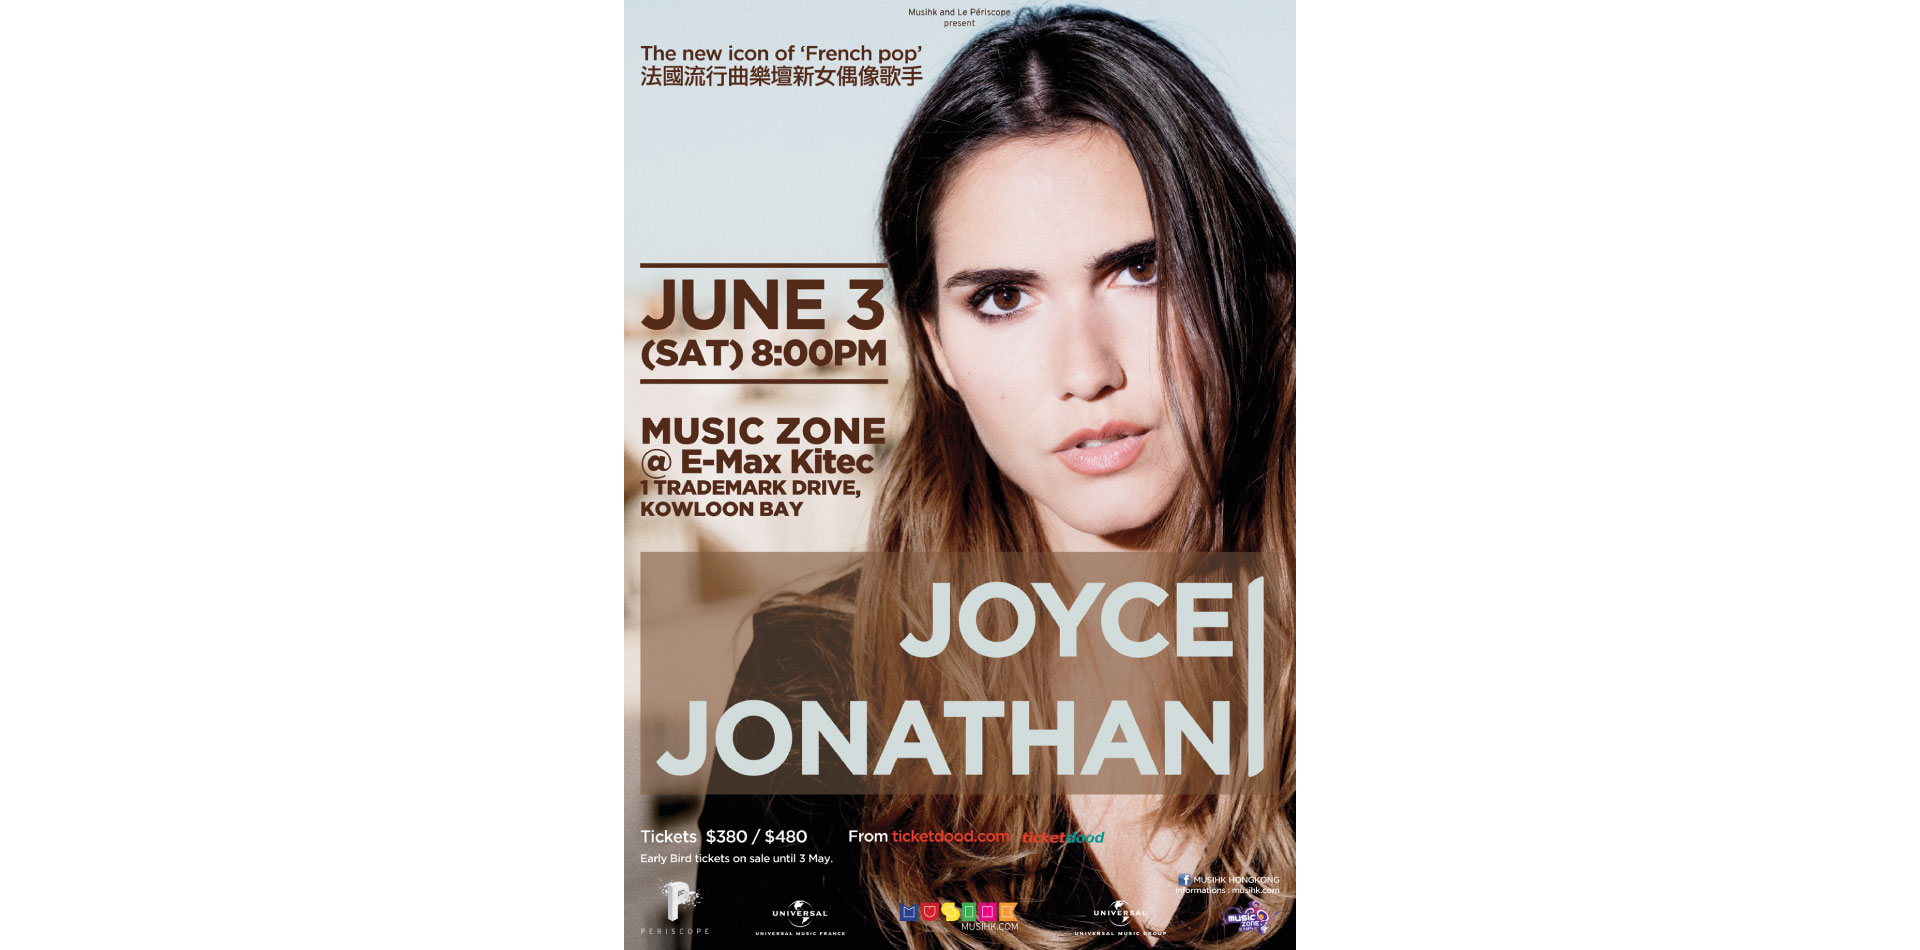 Joyce Jonathan - Asian Tour 2017